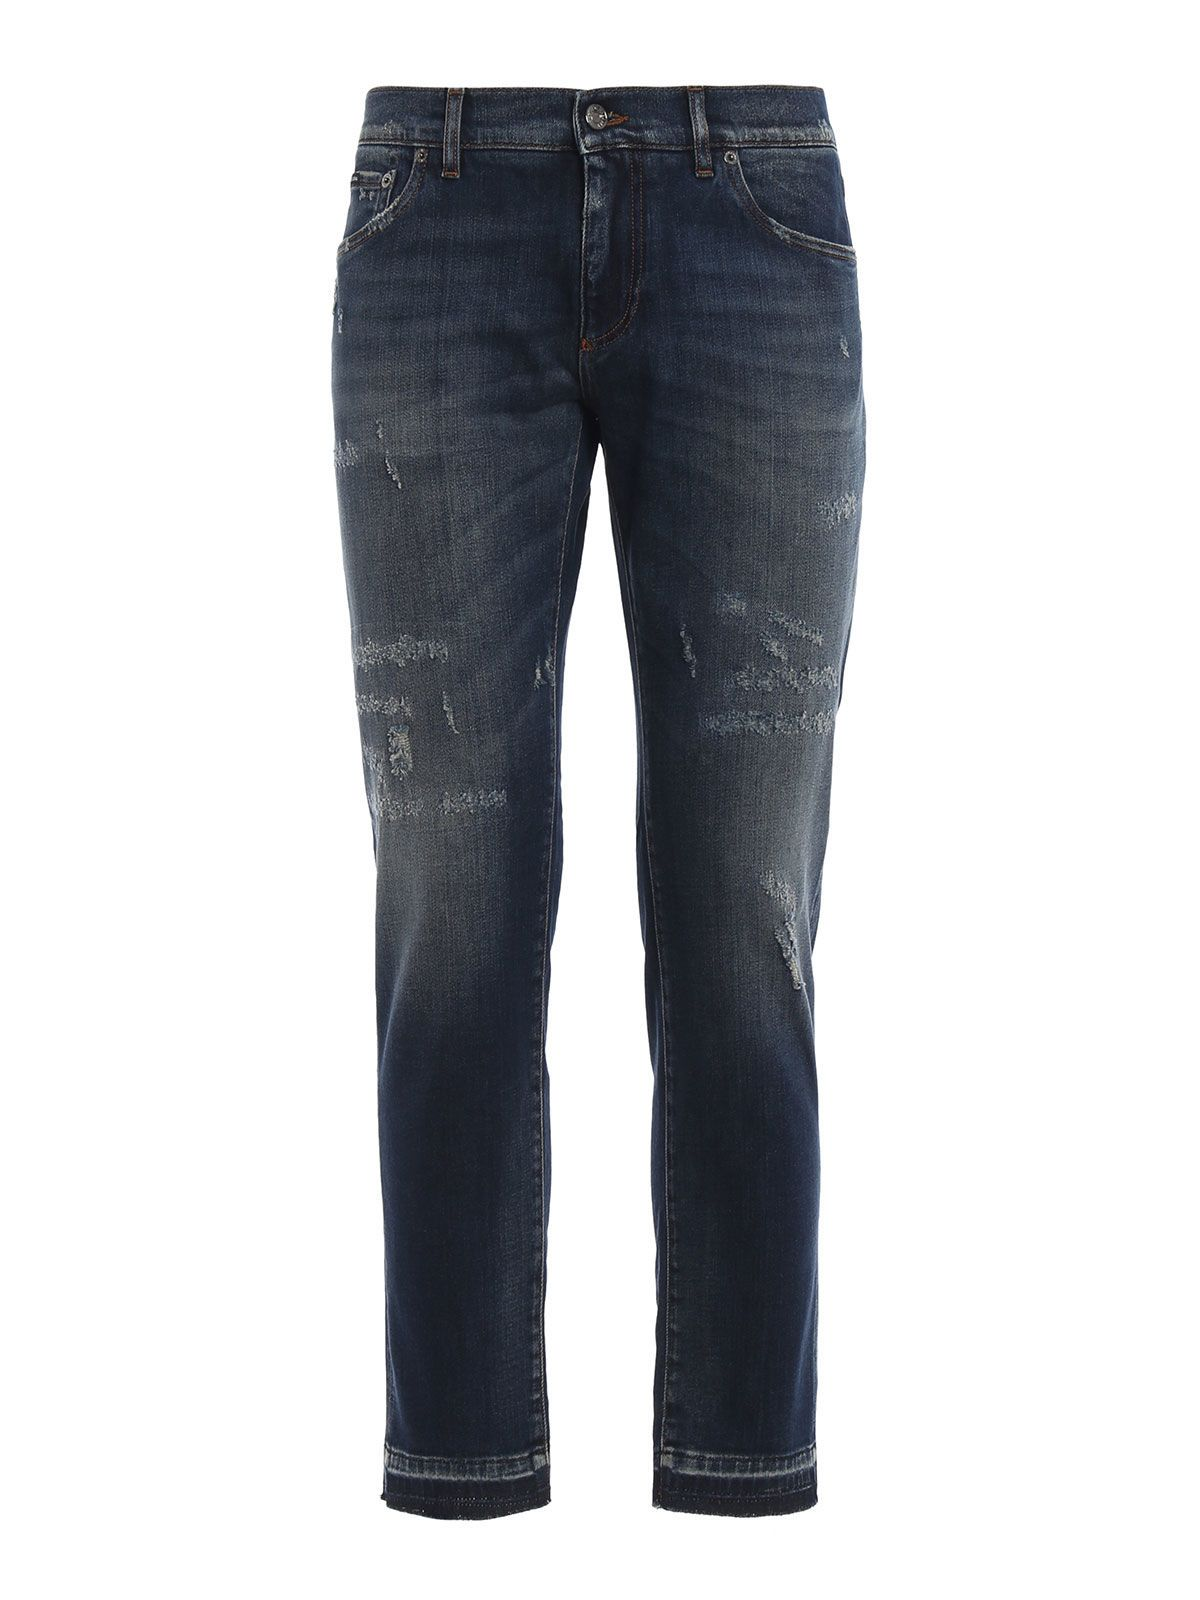 Dolce & Gabbana Stone-washed Slim Fit Jeans